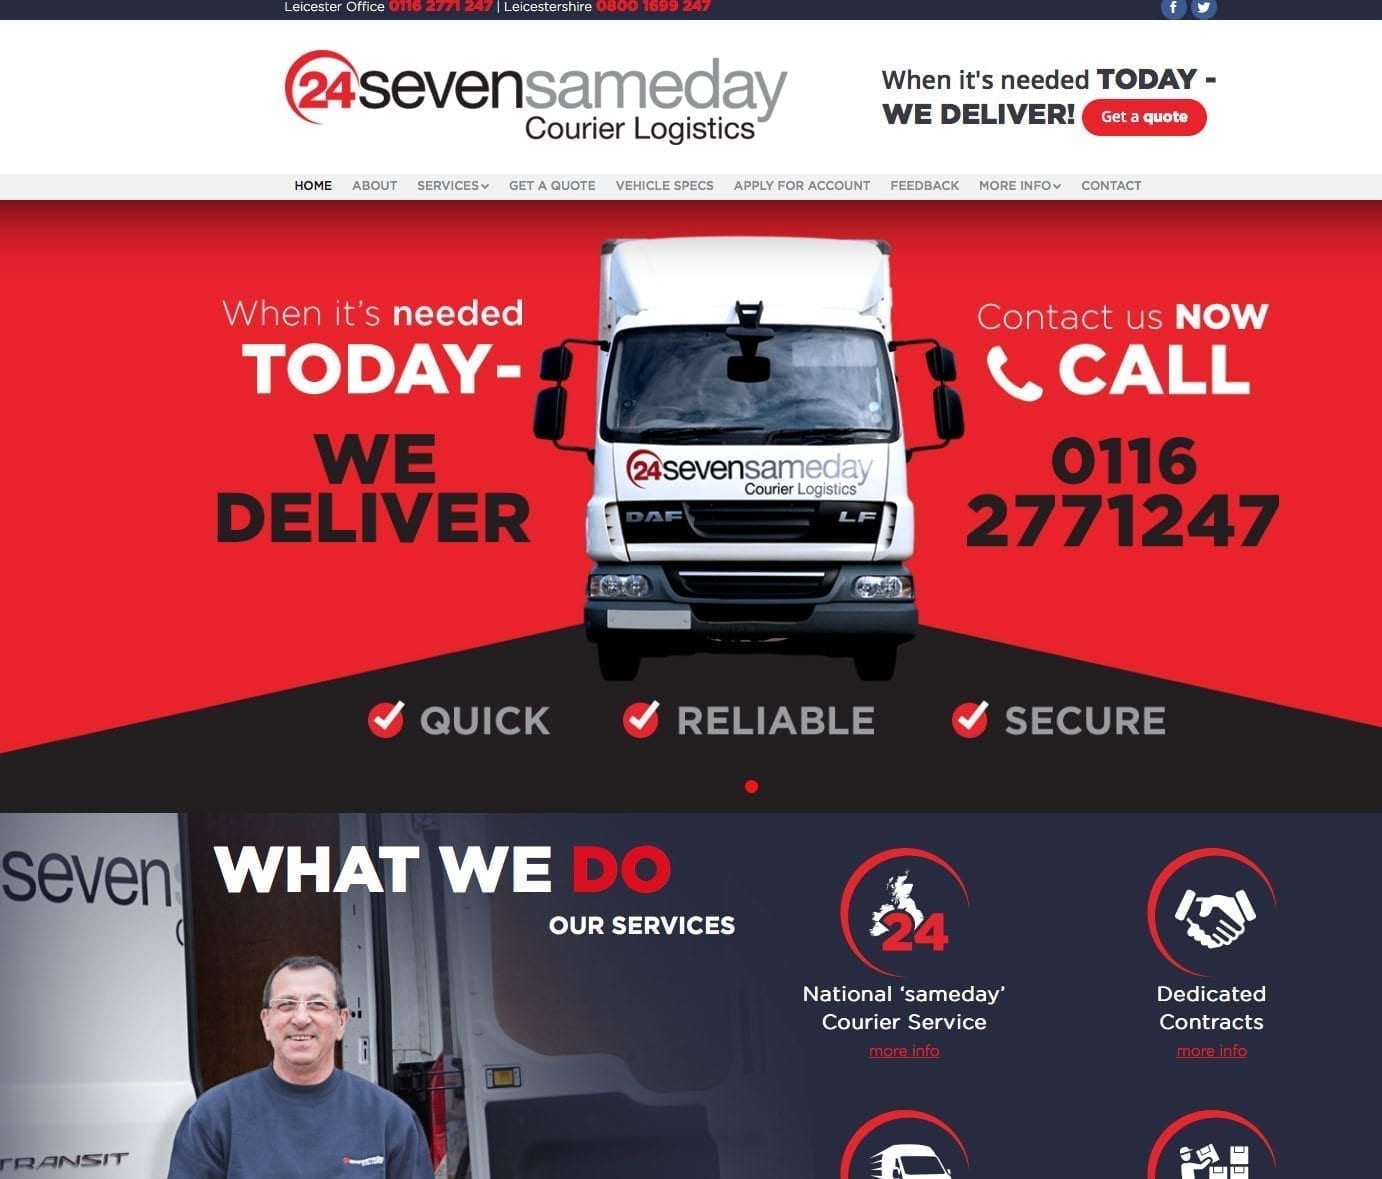 New site launched for 24seven sameday